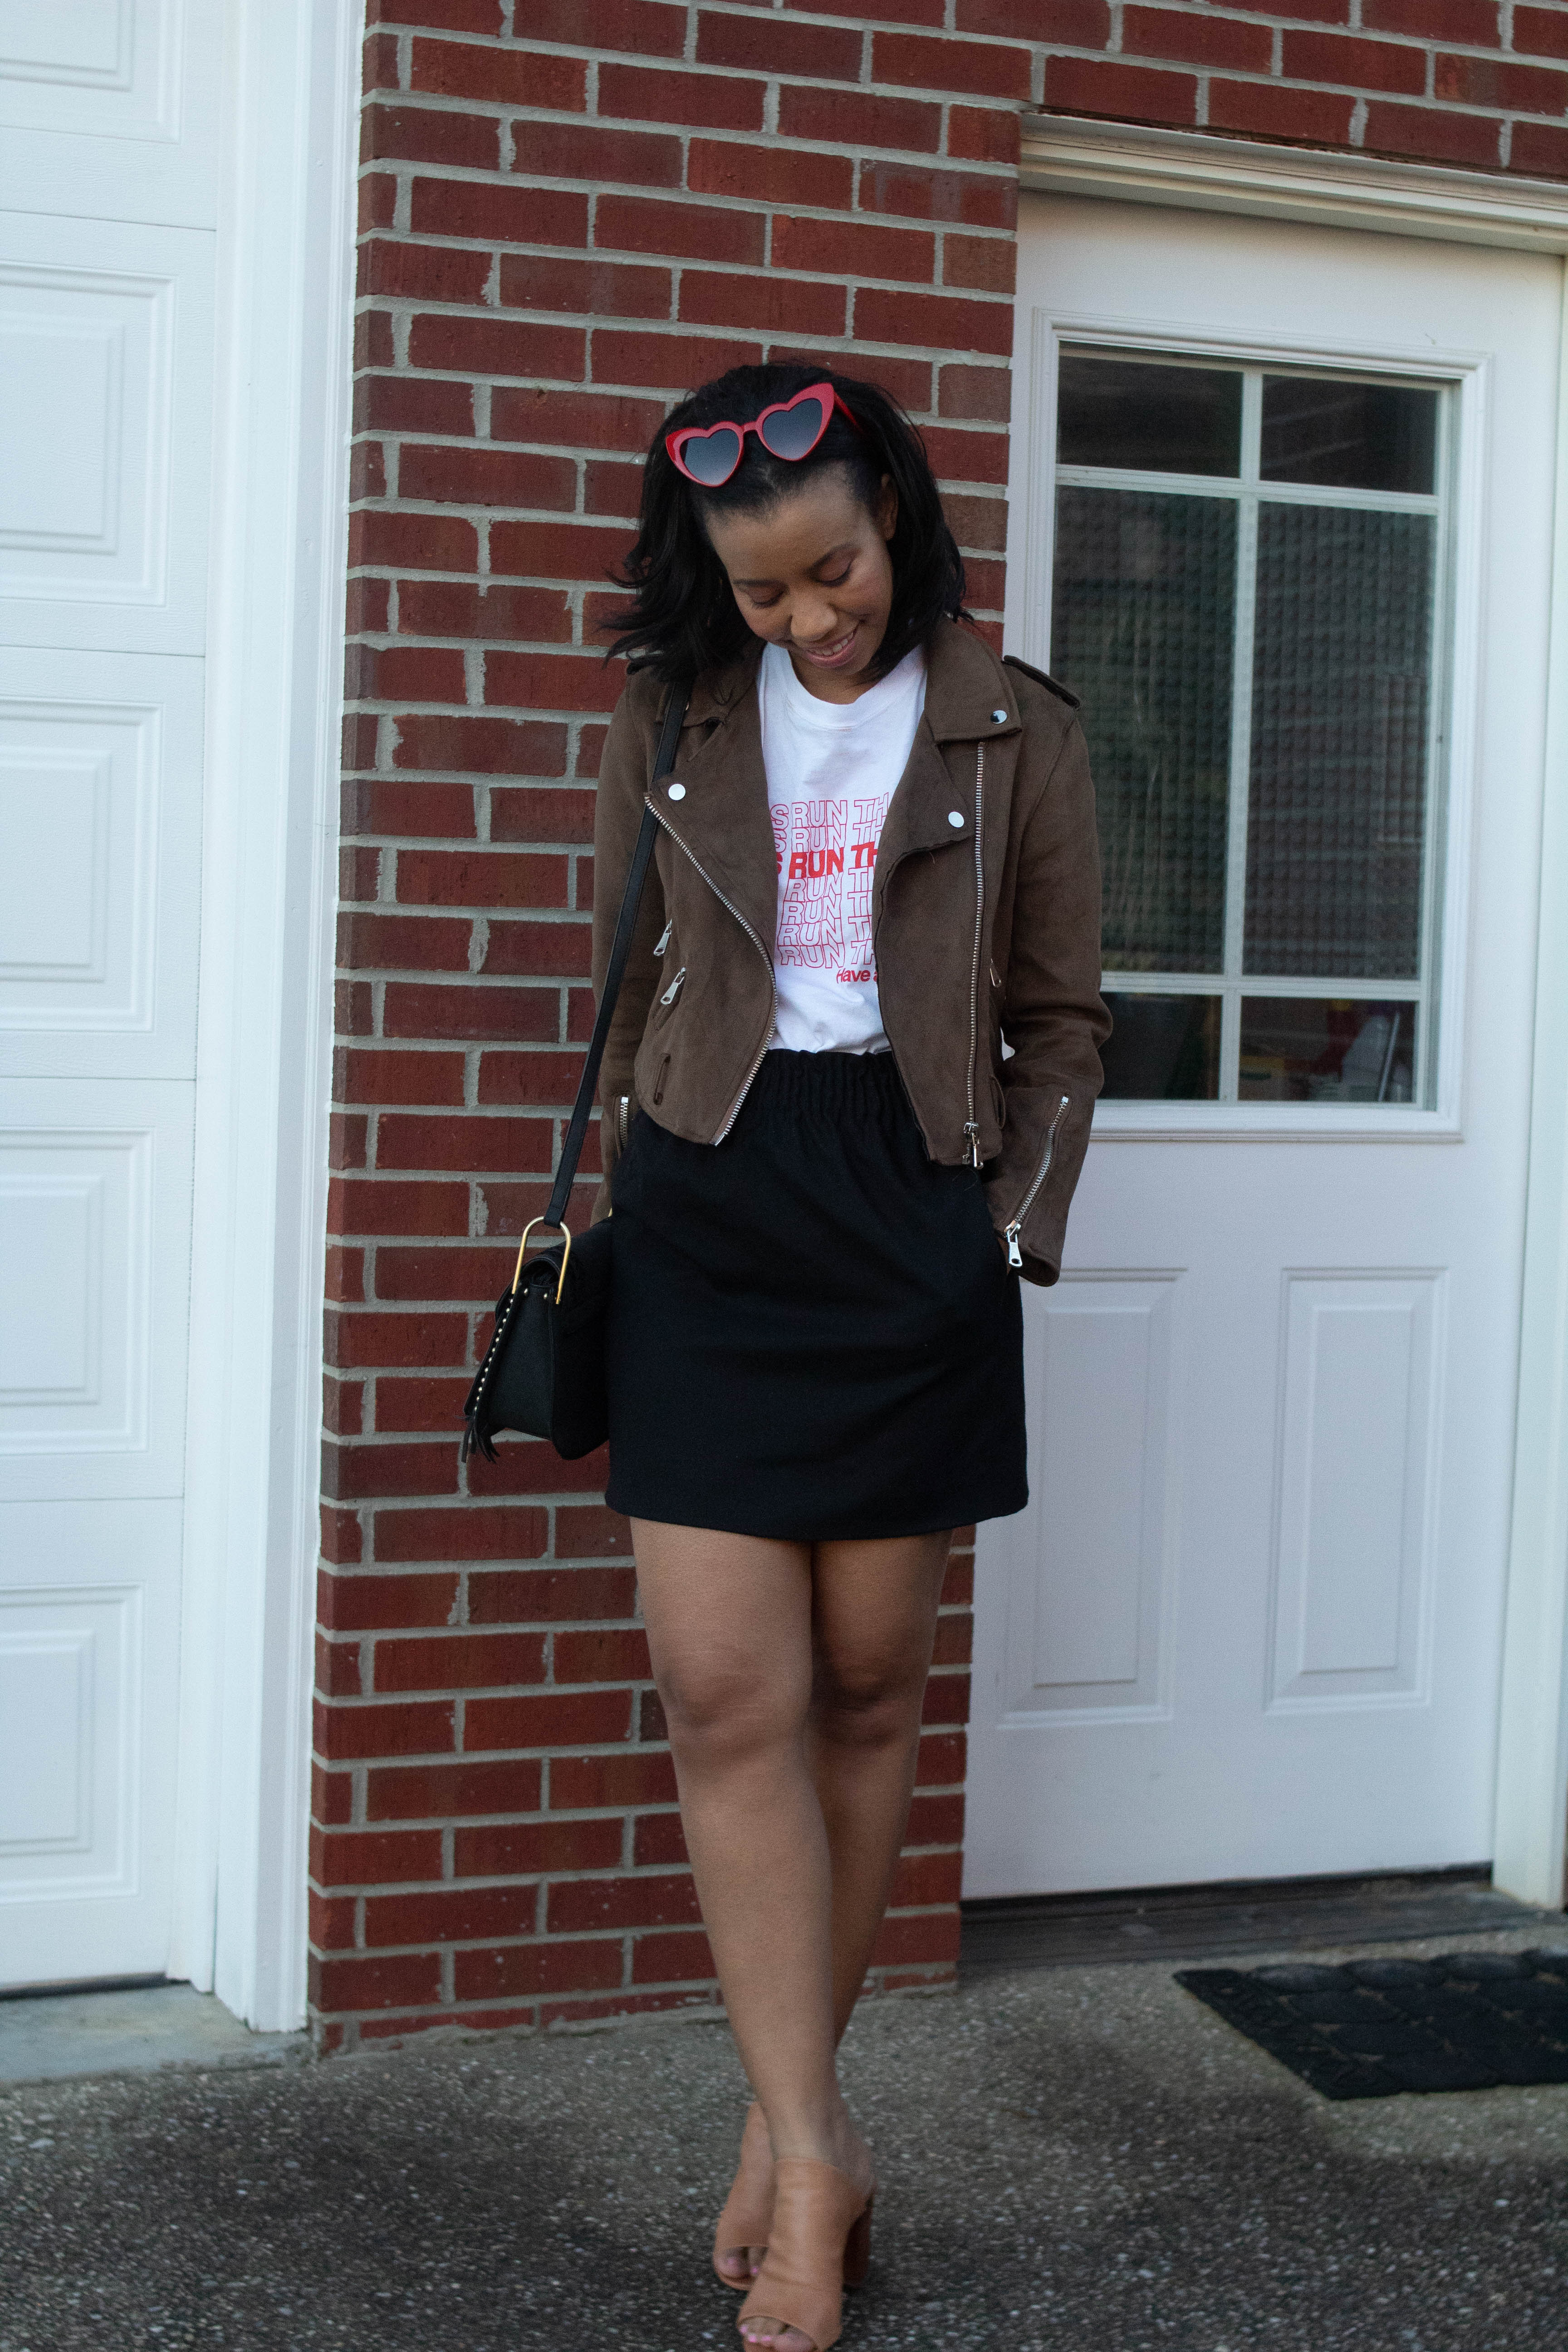 Popular style blogger, What Nicole Wore, shows how to take ten wardrobe staples and create twenty fall outfits with a fall capsule wardrobe. // kentucky blogger, louisville fashion blog, designer inspired sunglasses, black mini skirt outfit, j crew outfits, moto jacket inspiration fall outfit ideas